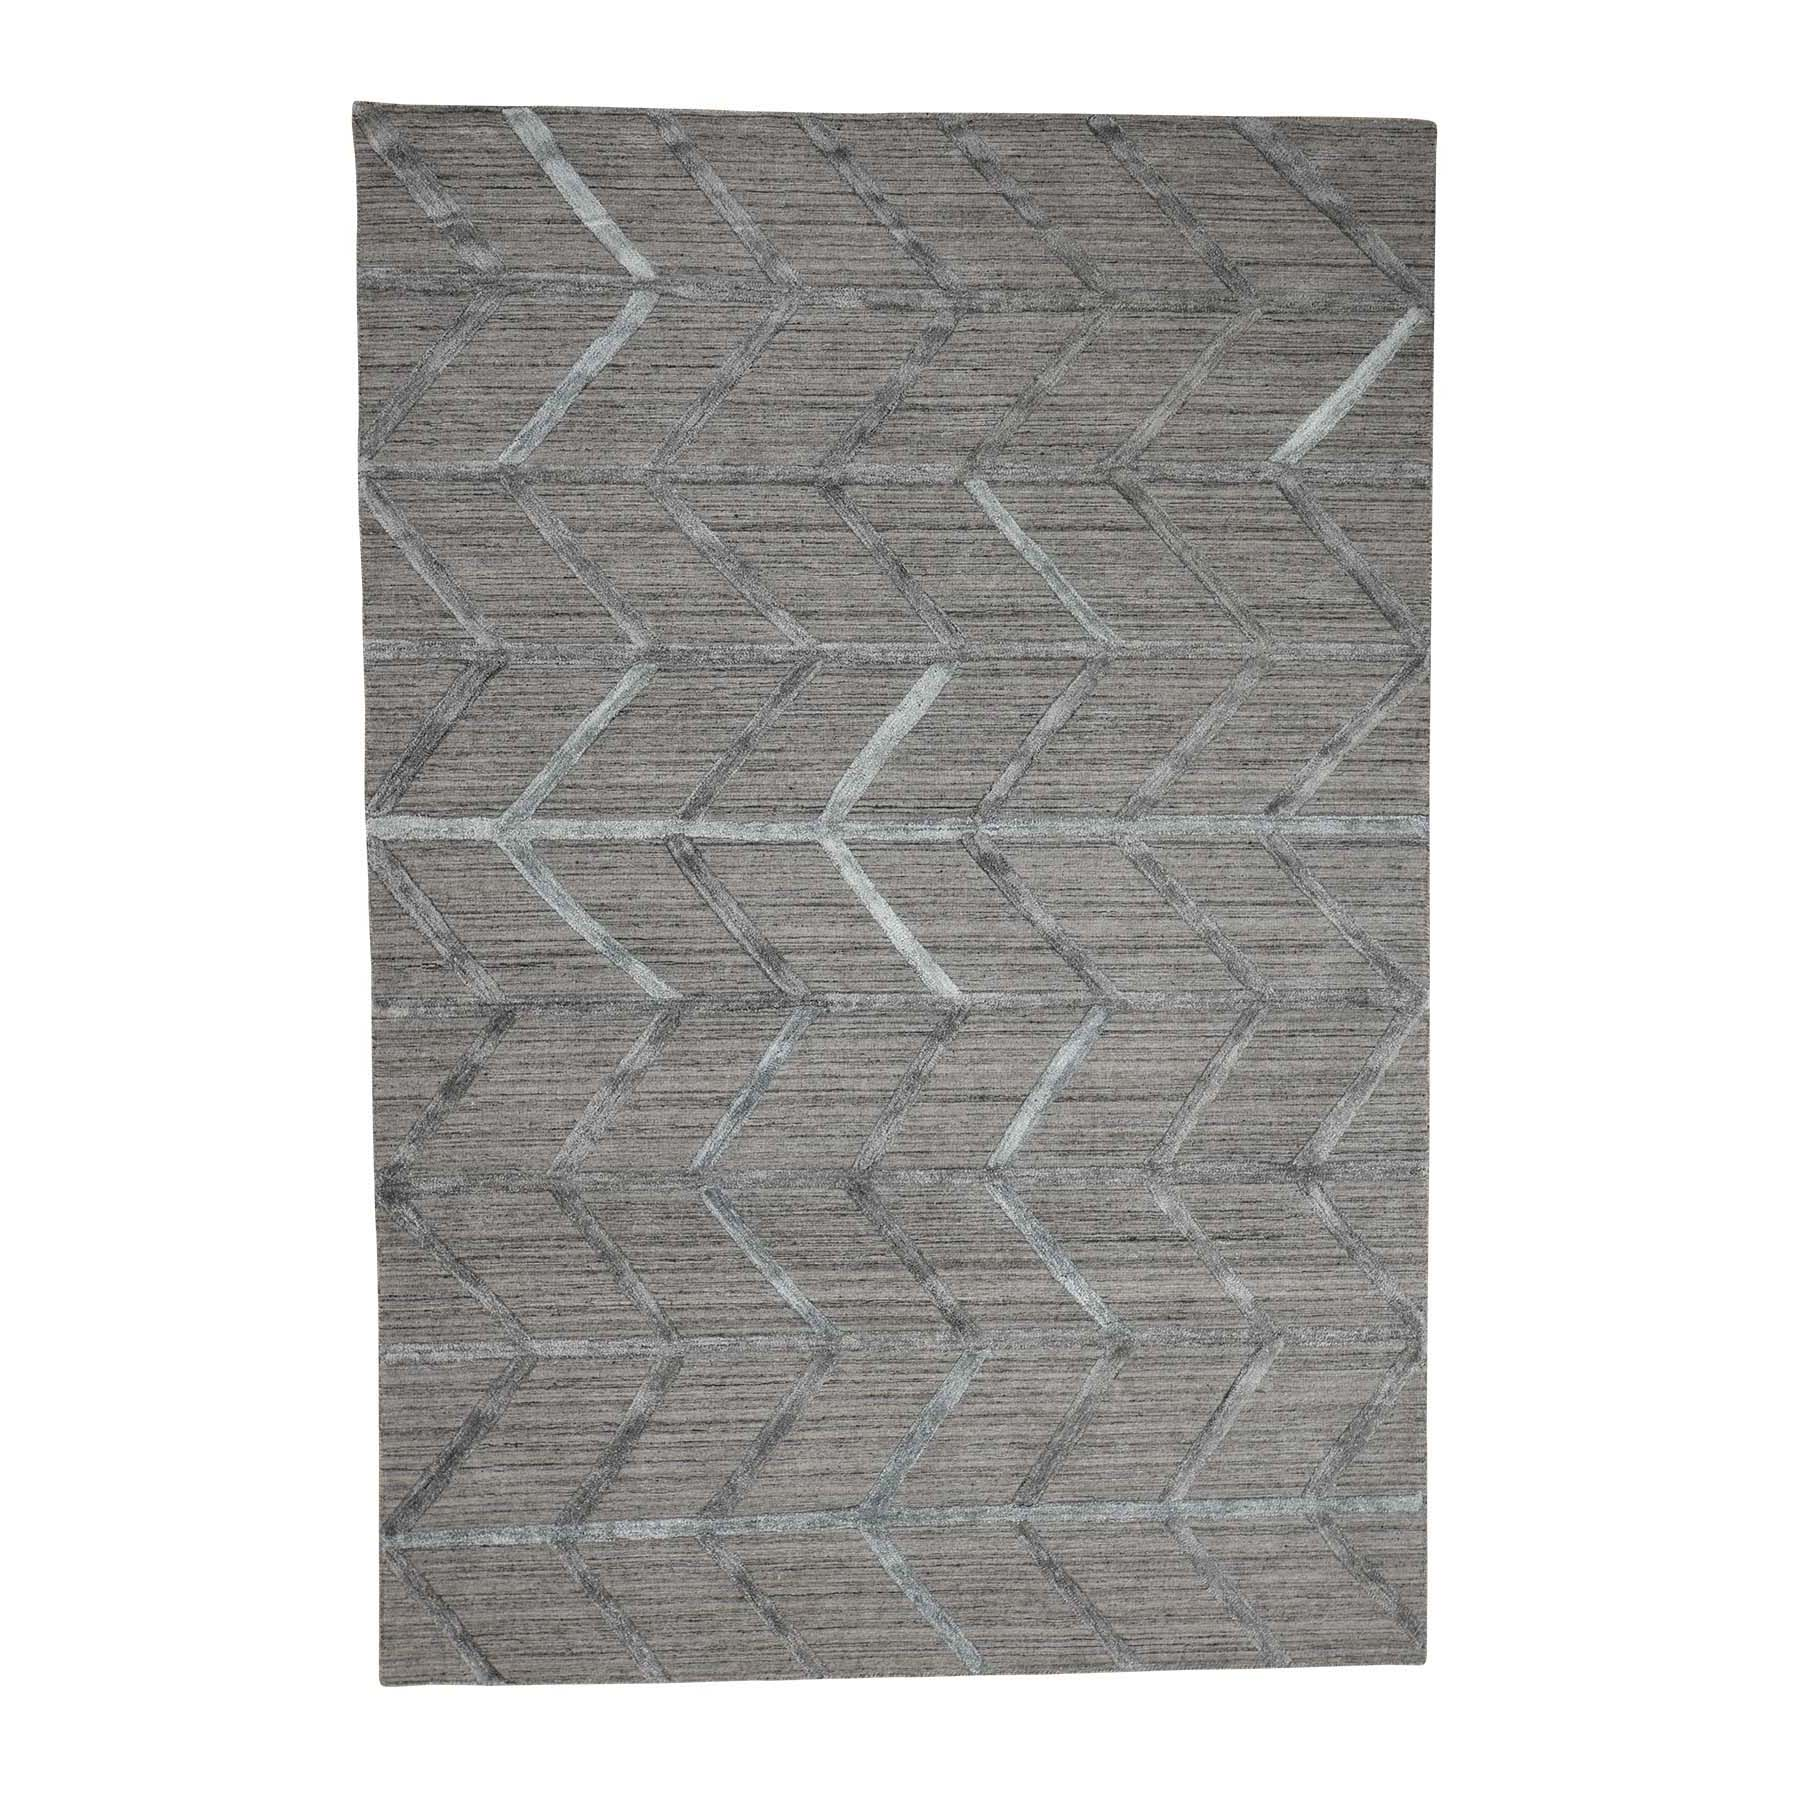 "6'x8'10"" Hand Loomed Wool and Silk Modern Arrow Design Grey Hi-Lo Pile Rug"